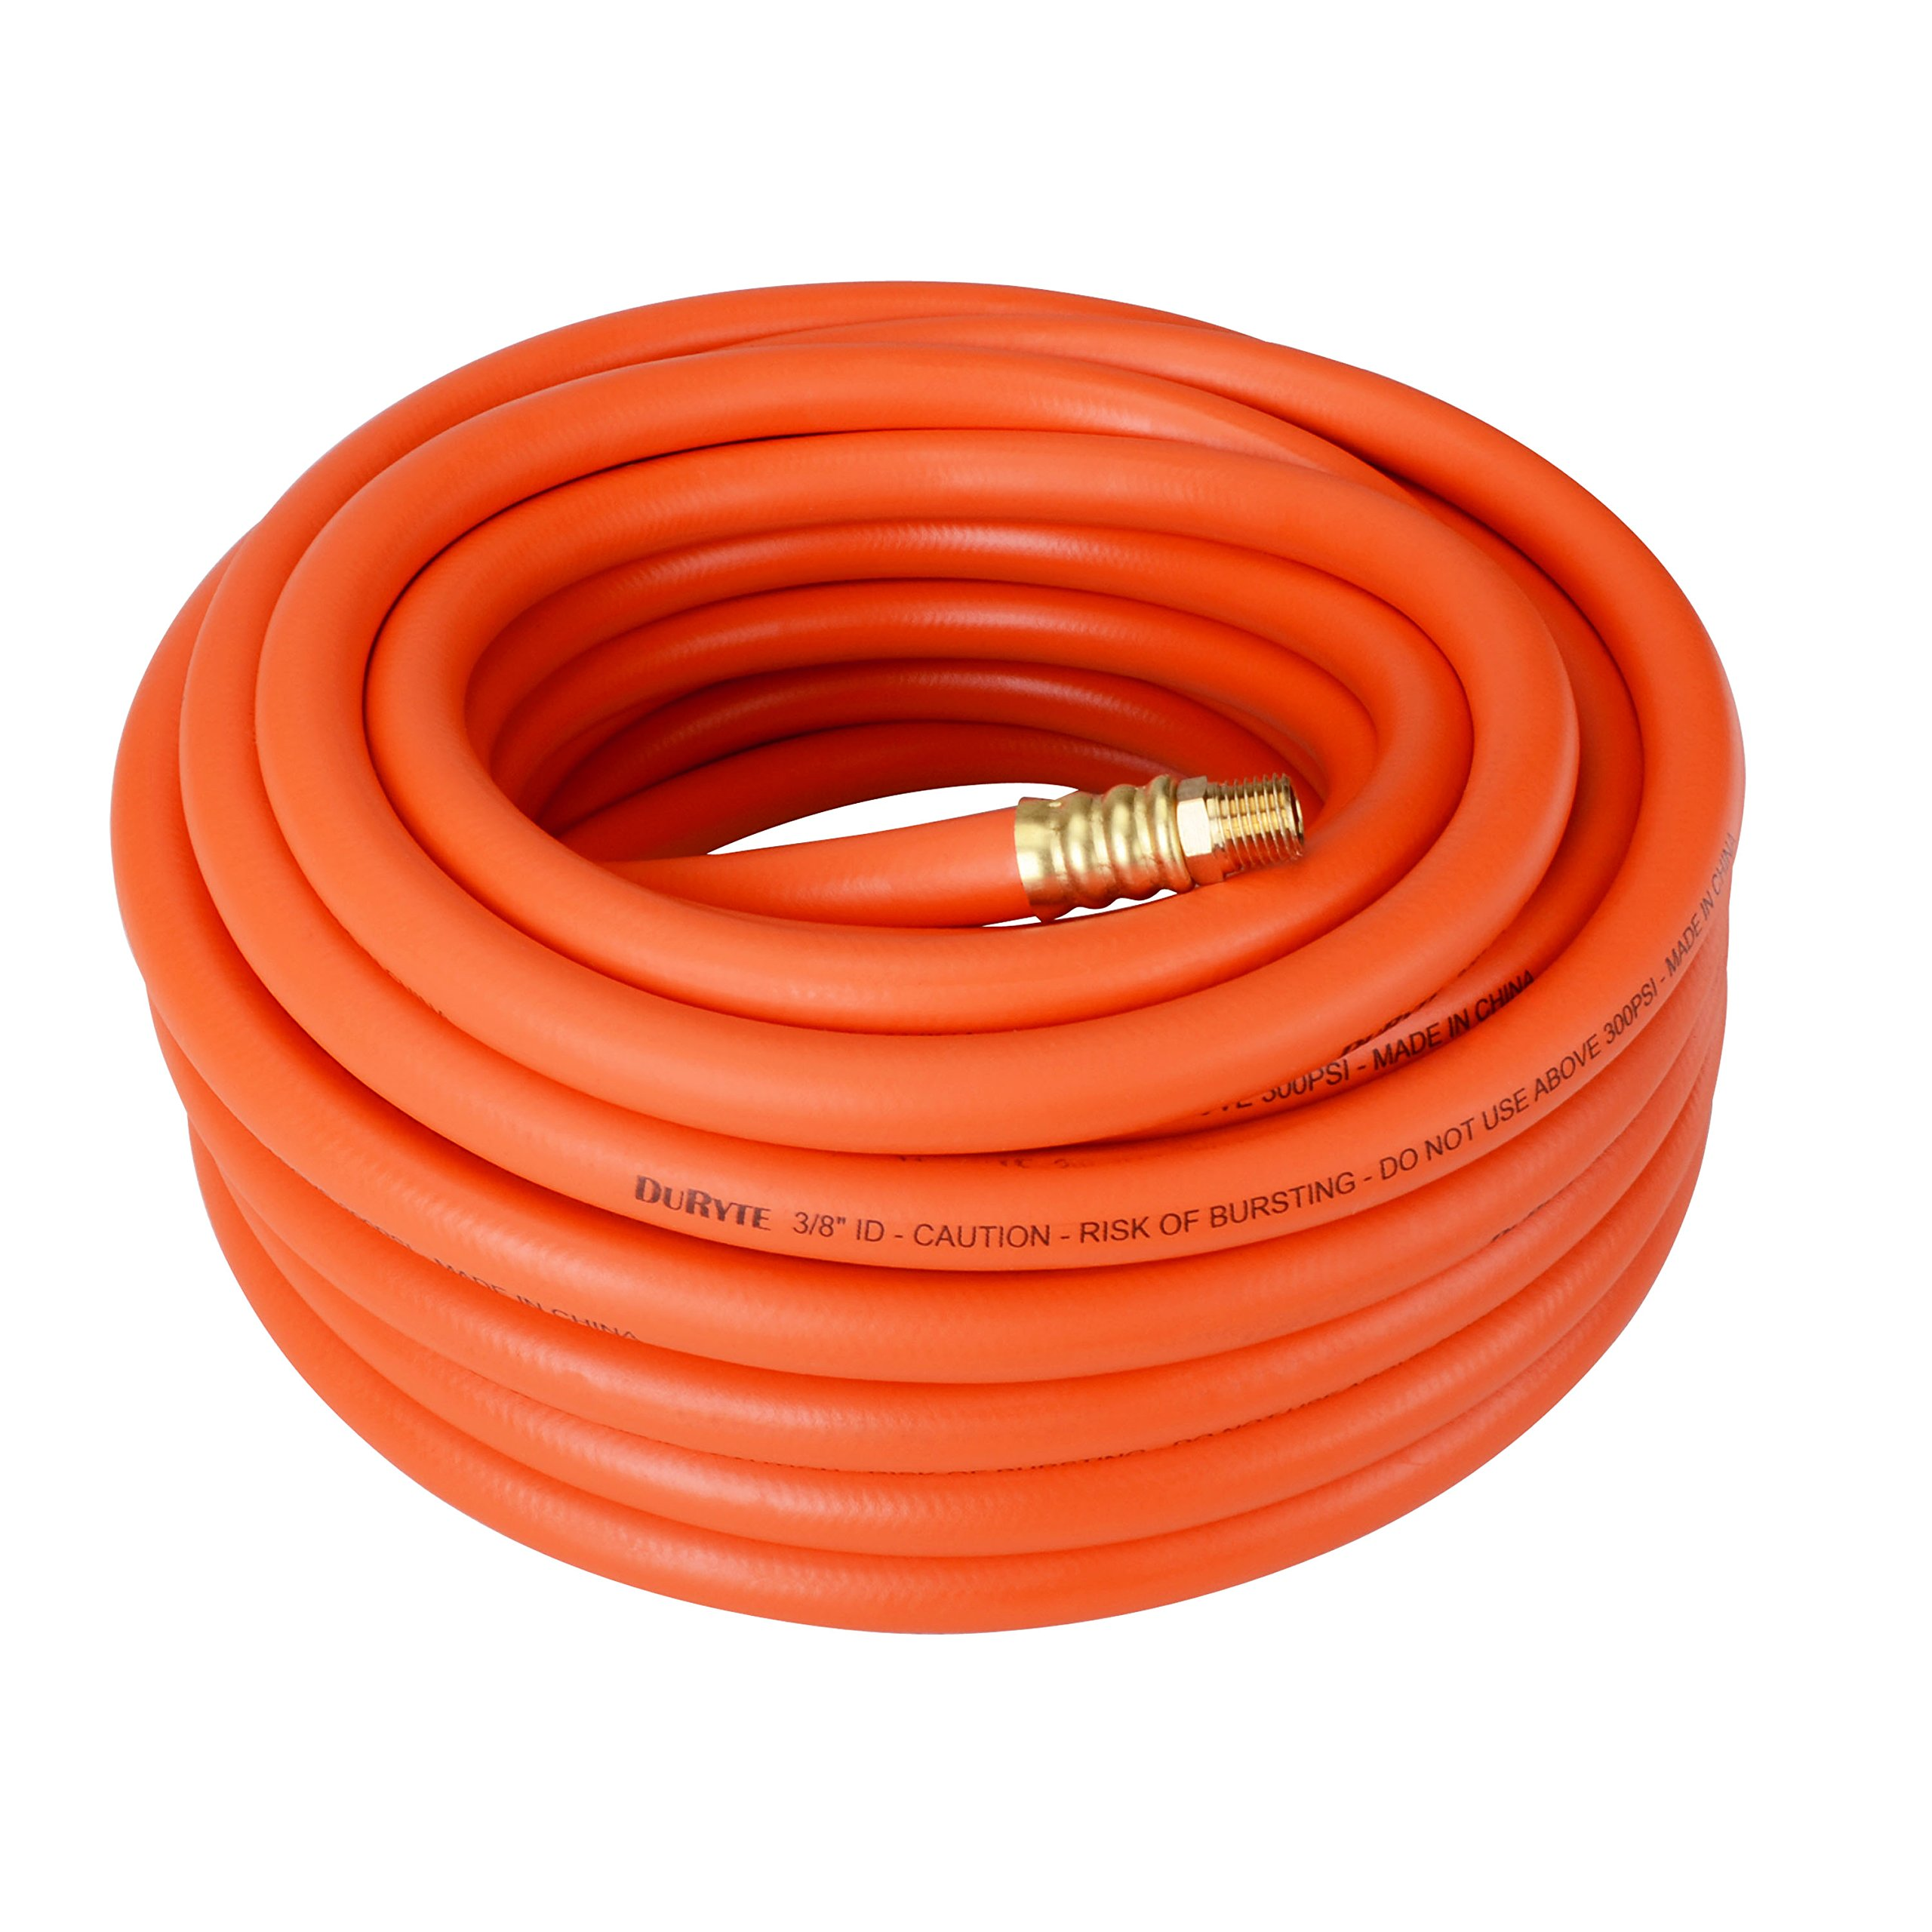 DuRyte Pro 300 PSI Rubber Air Hose - 3/8-Inch by 50-Feet, 1/4-Inch MNPT Brass Ends